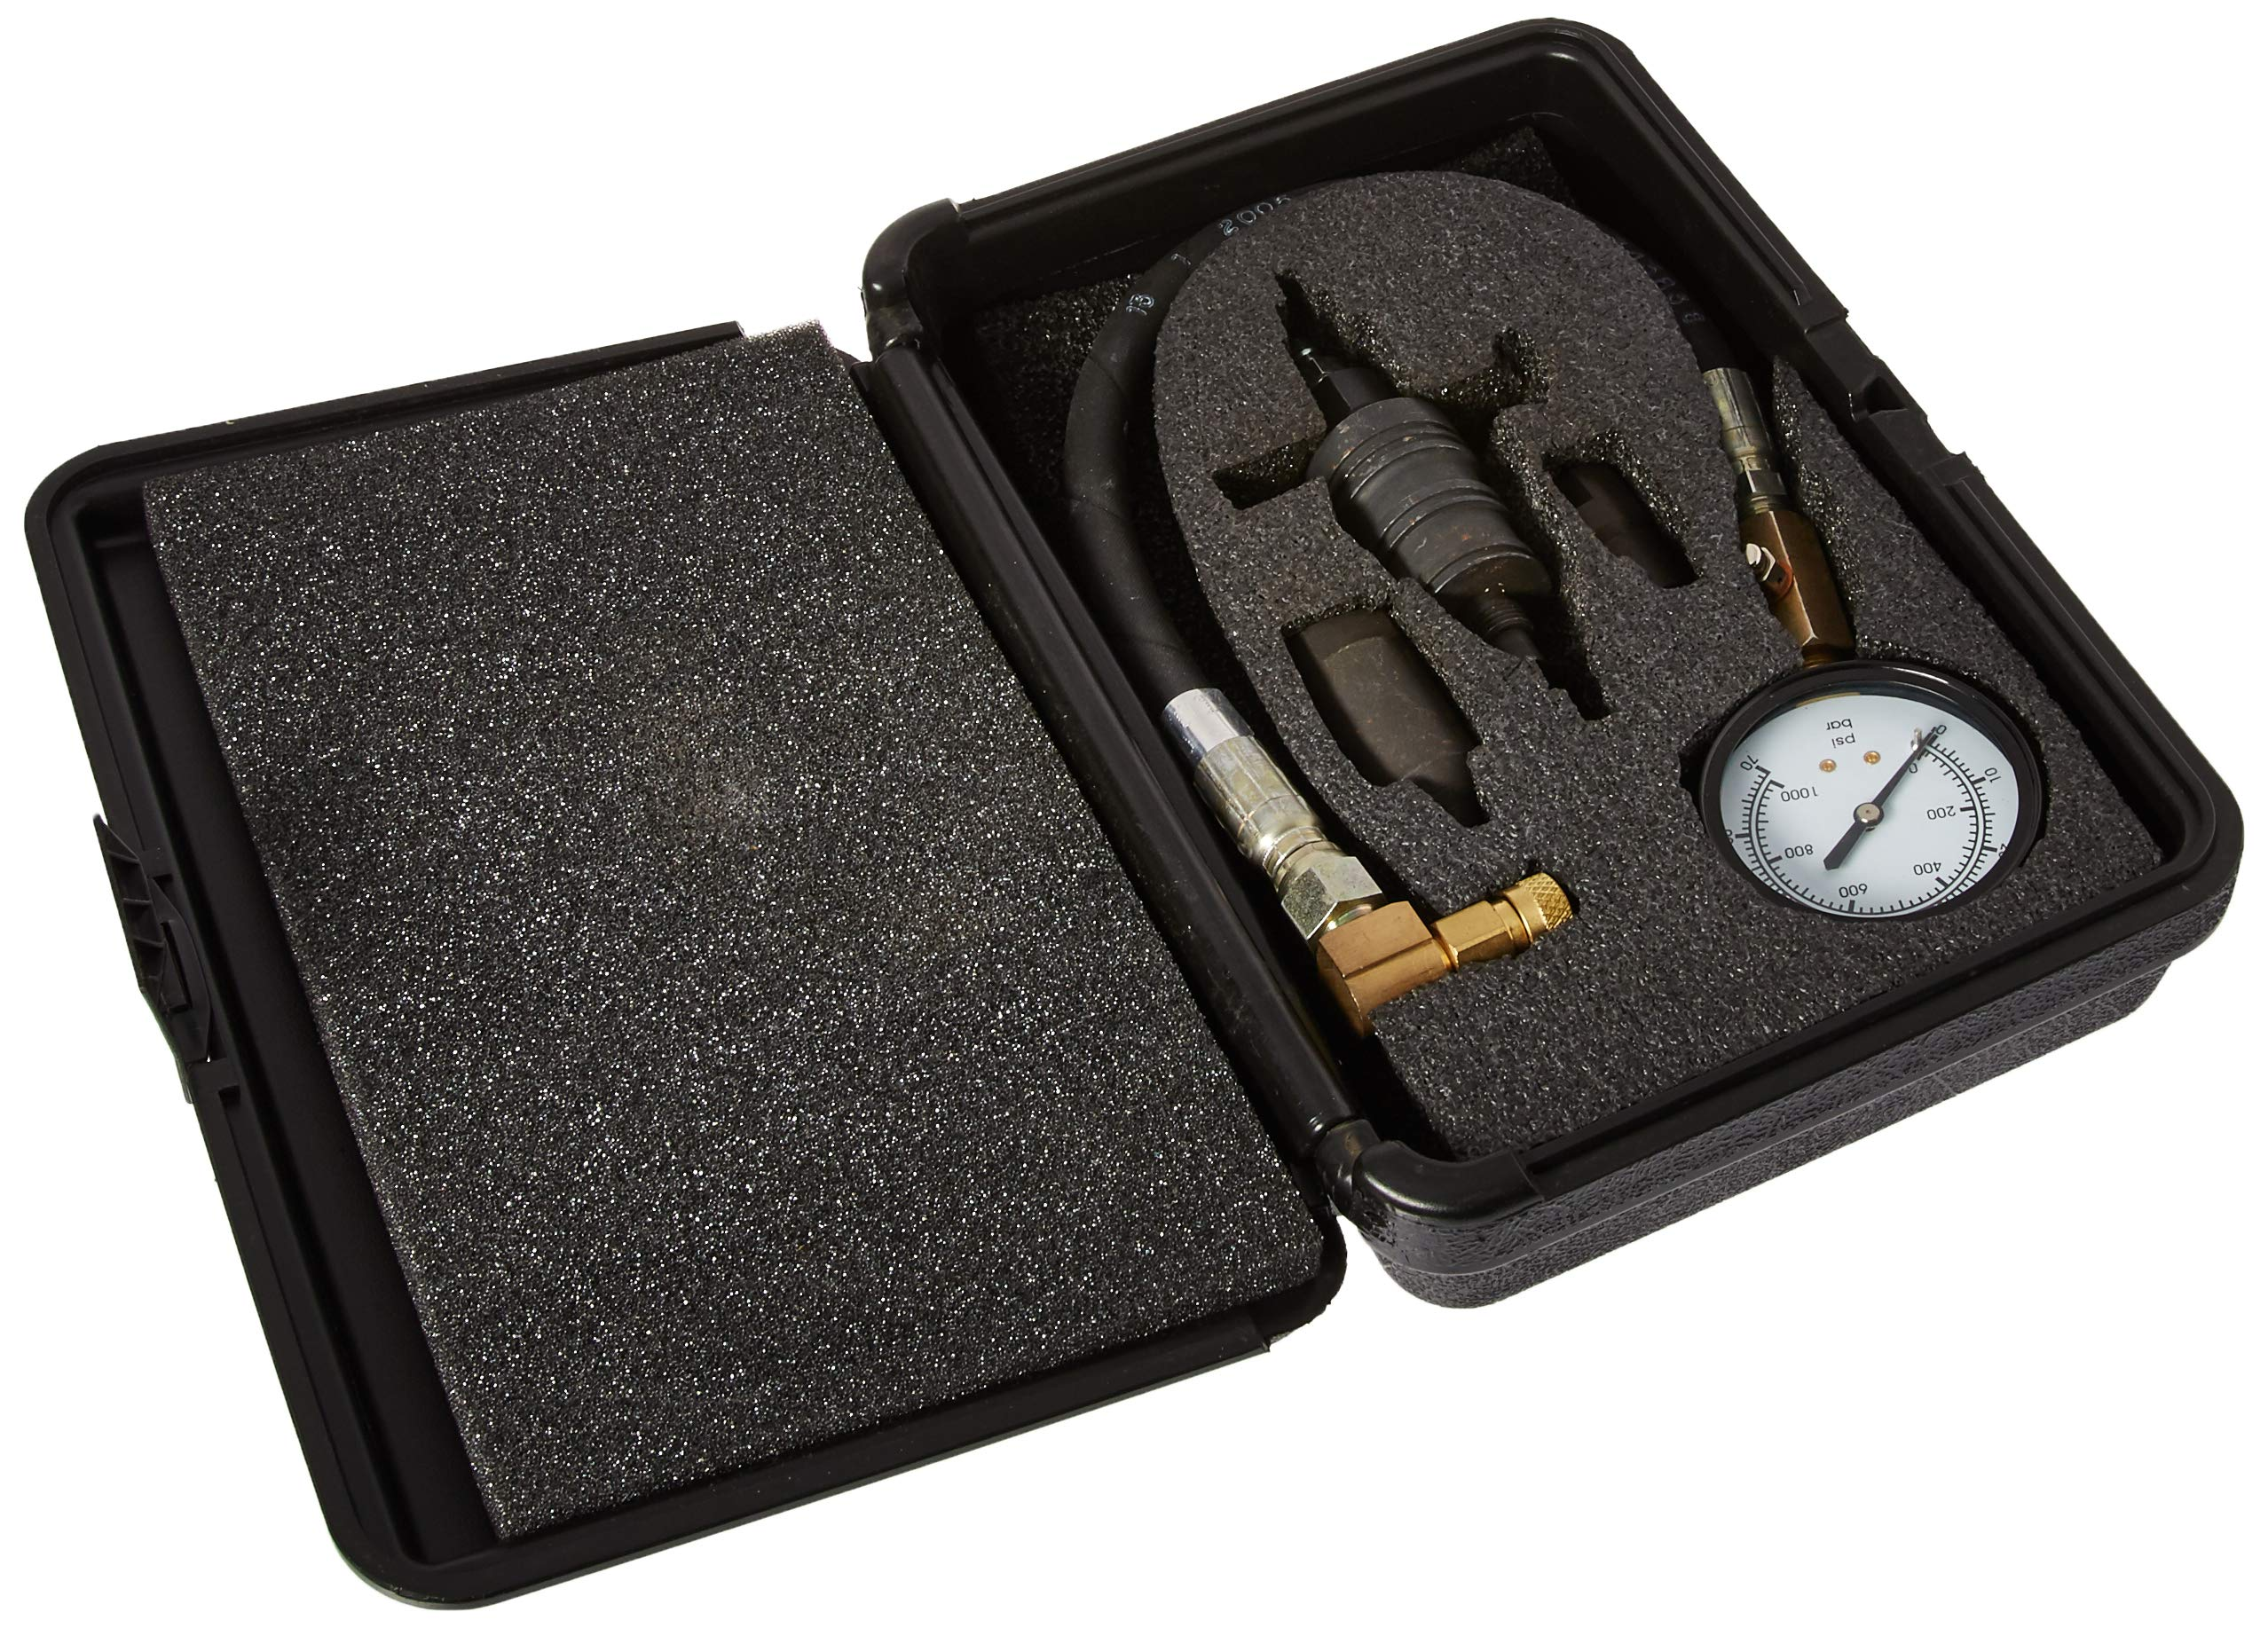 Tool Aid S&G 34860 Diesel Engine Compression Tester Set by Tool Aid (Image #2)